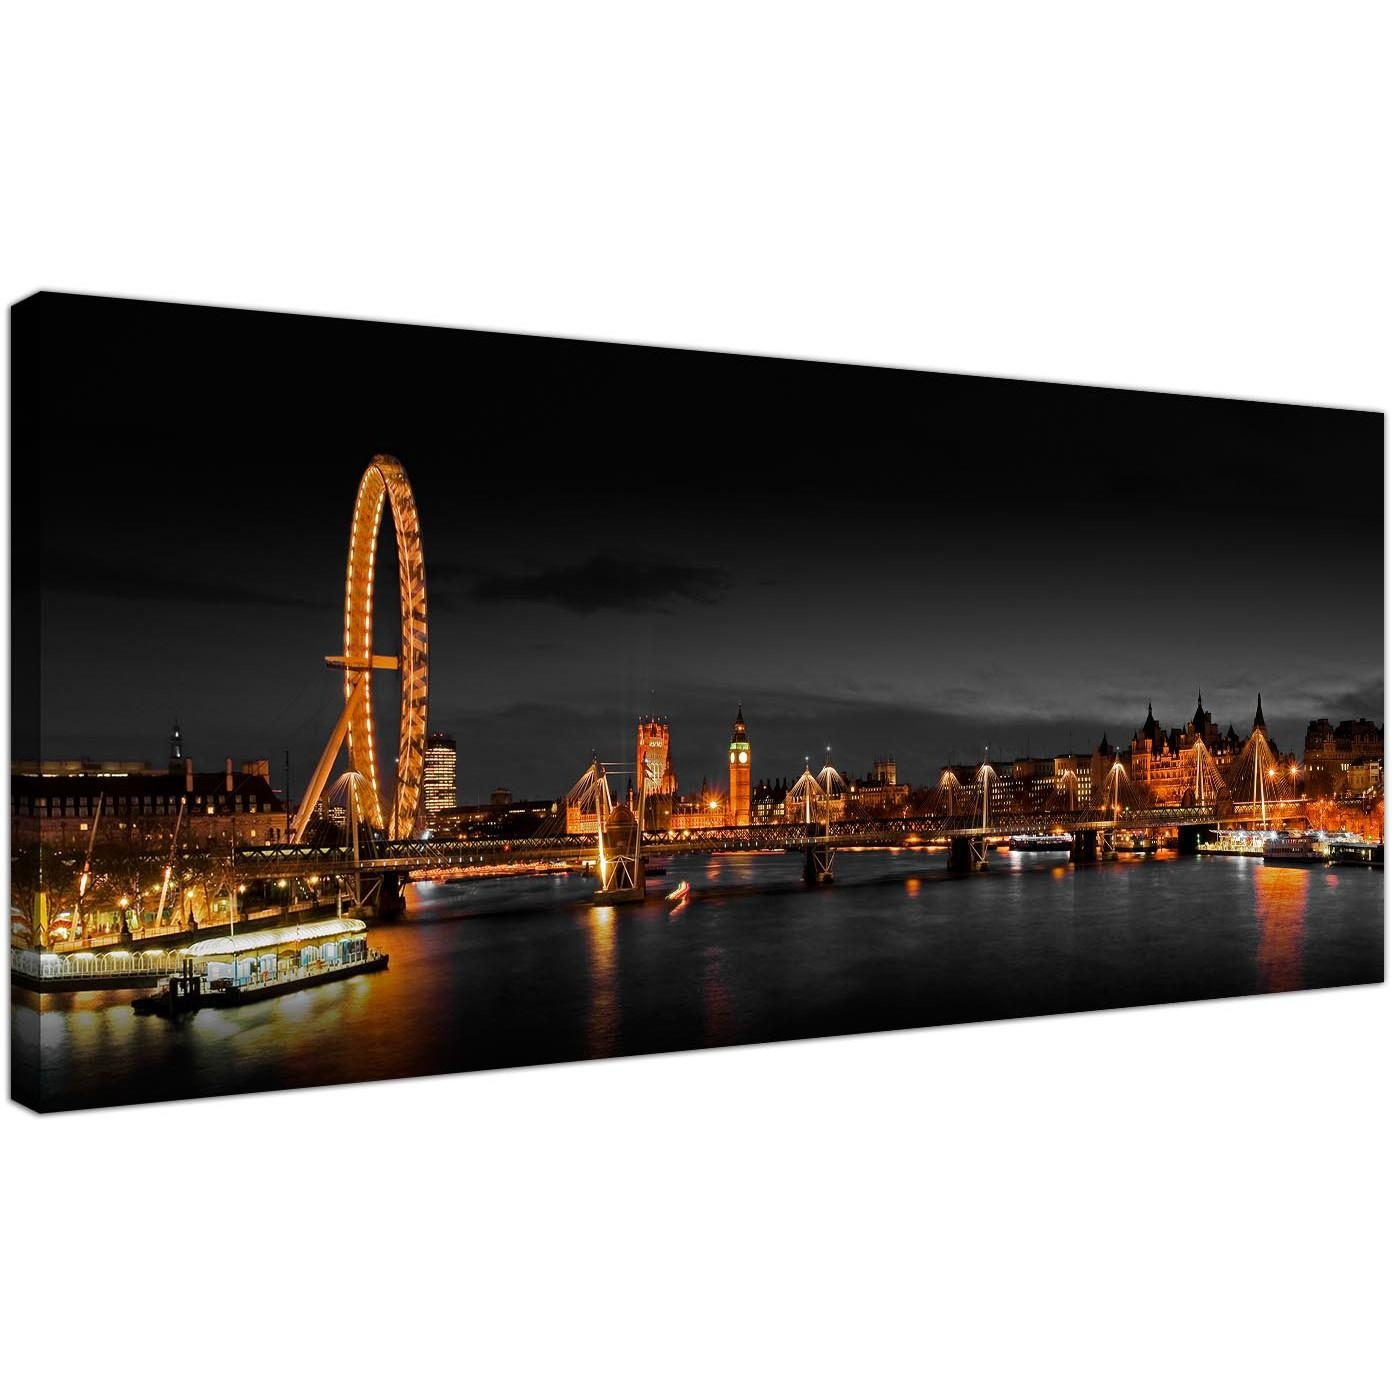 Panoramic Canvas Wall Art Of London Eye At Night For Your Living Room Pertaining To Cityscape Canvas Wall Art (View 8 of 20)